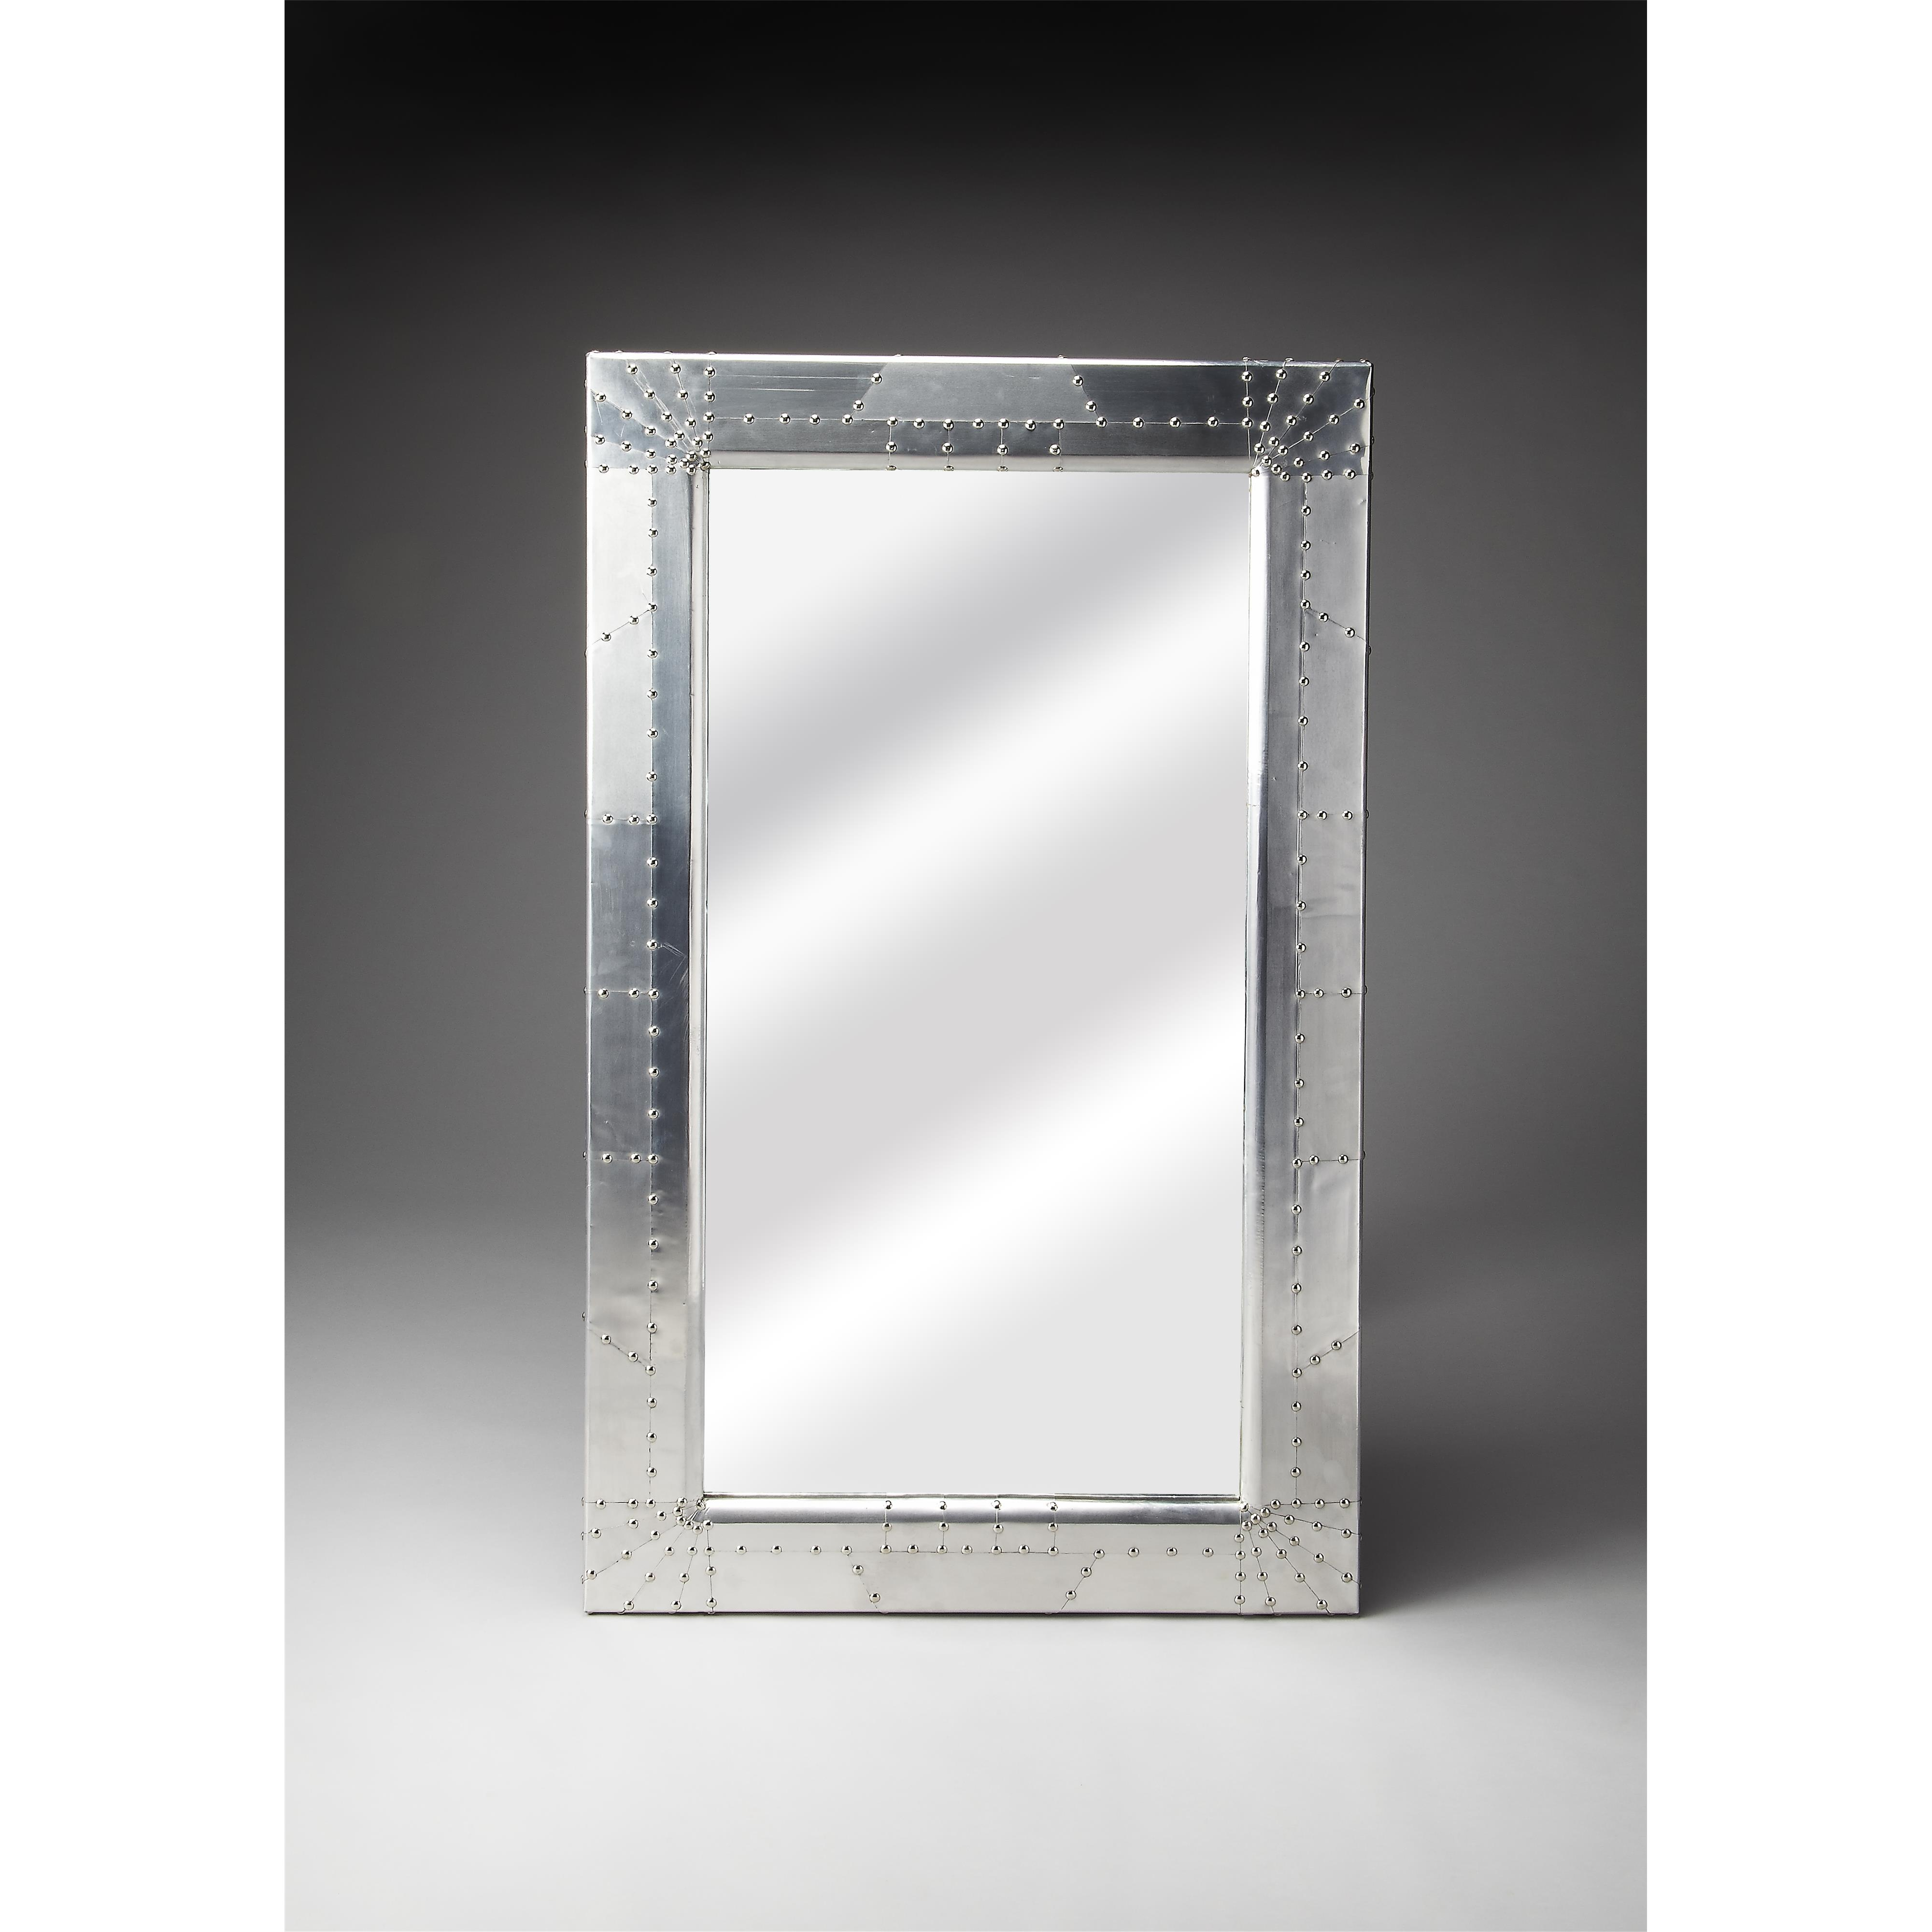 Butler Specialty Company Industrial Chic Wall Mirror - Item Number: 5118330